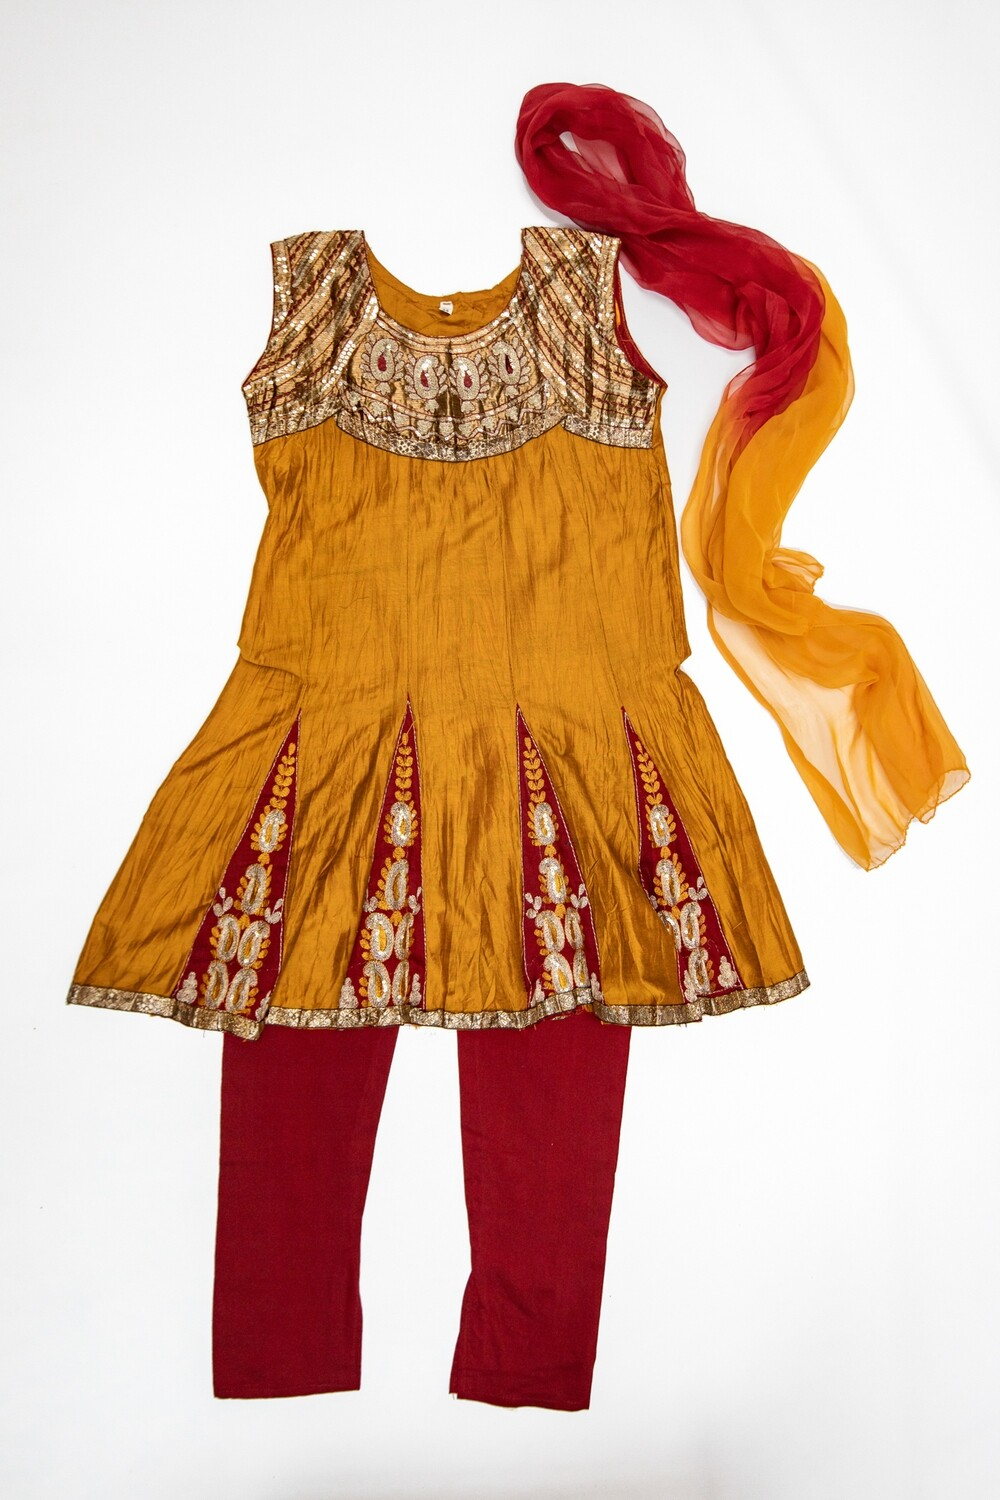 Old Gold & Red Churidar Set, 11-12 years